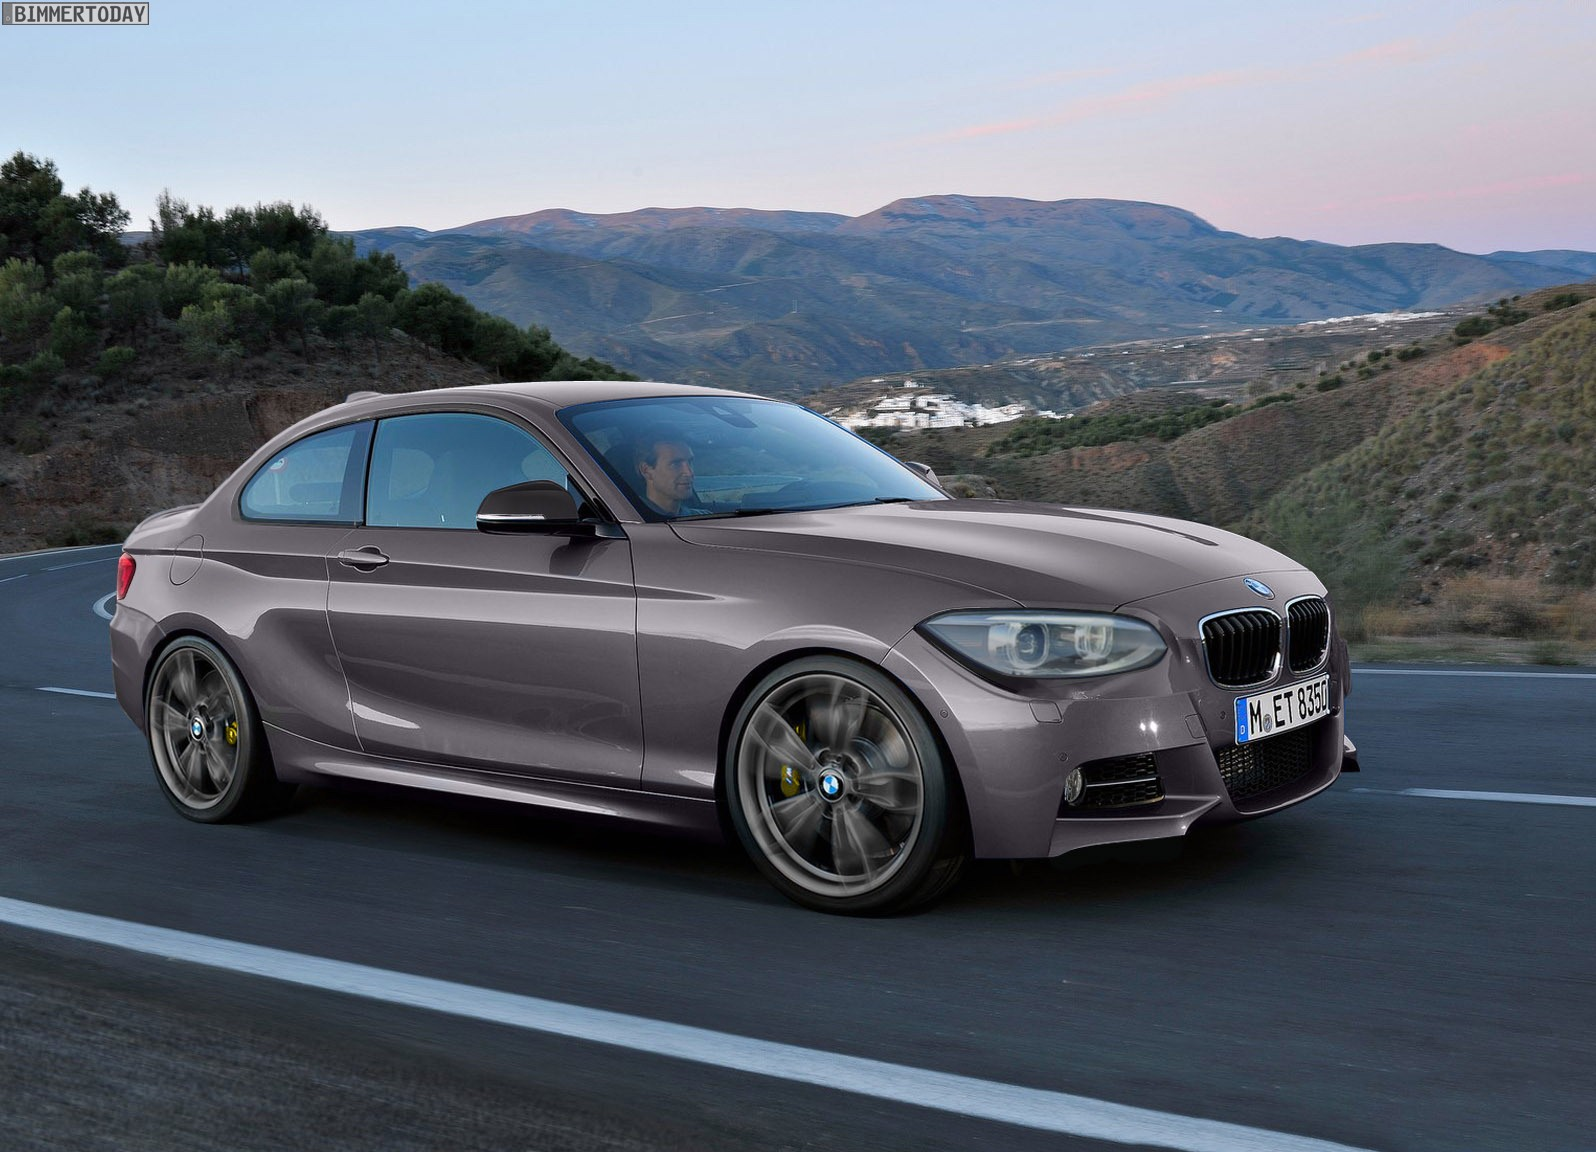 bmw 2er coupe technical details history photos on better